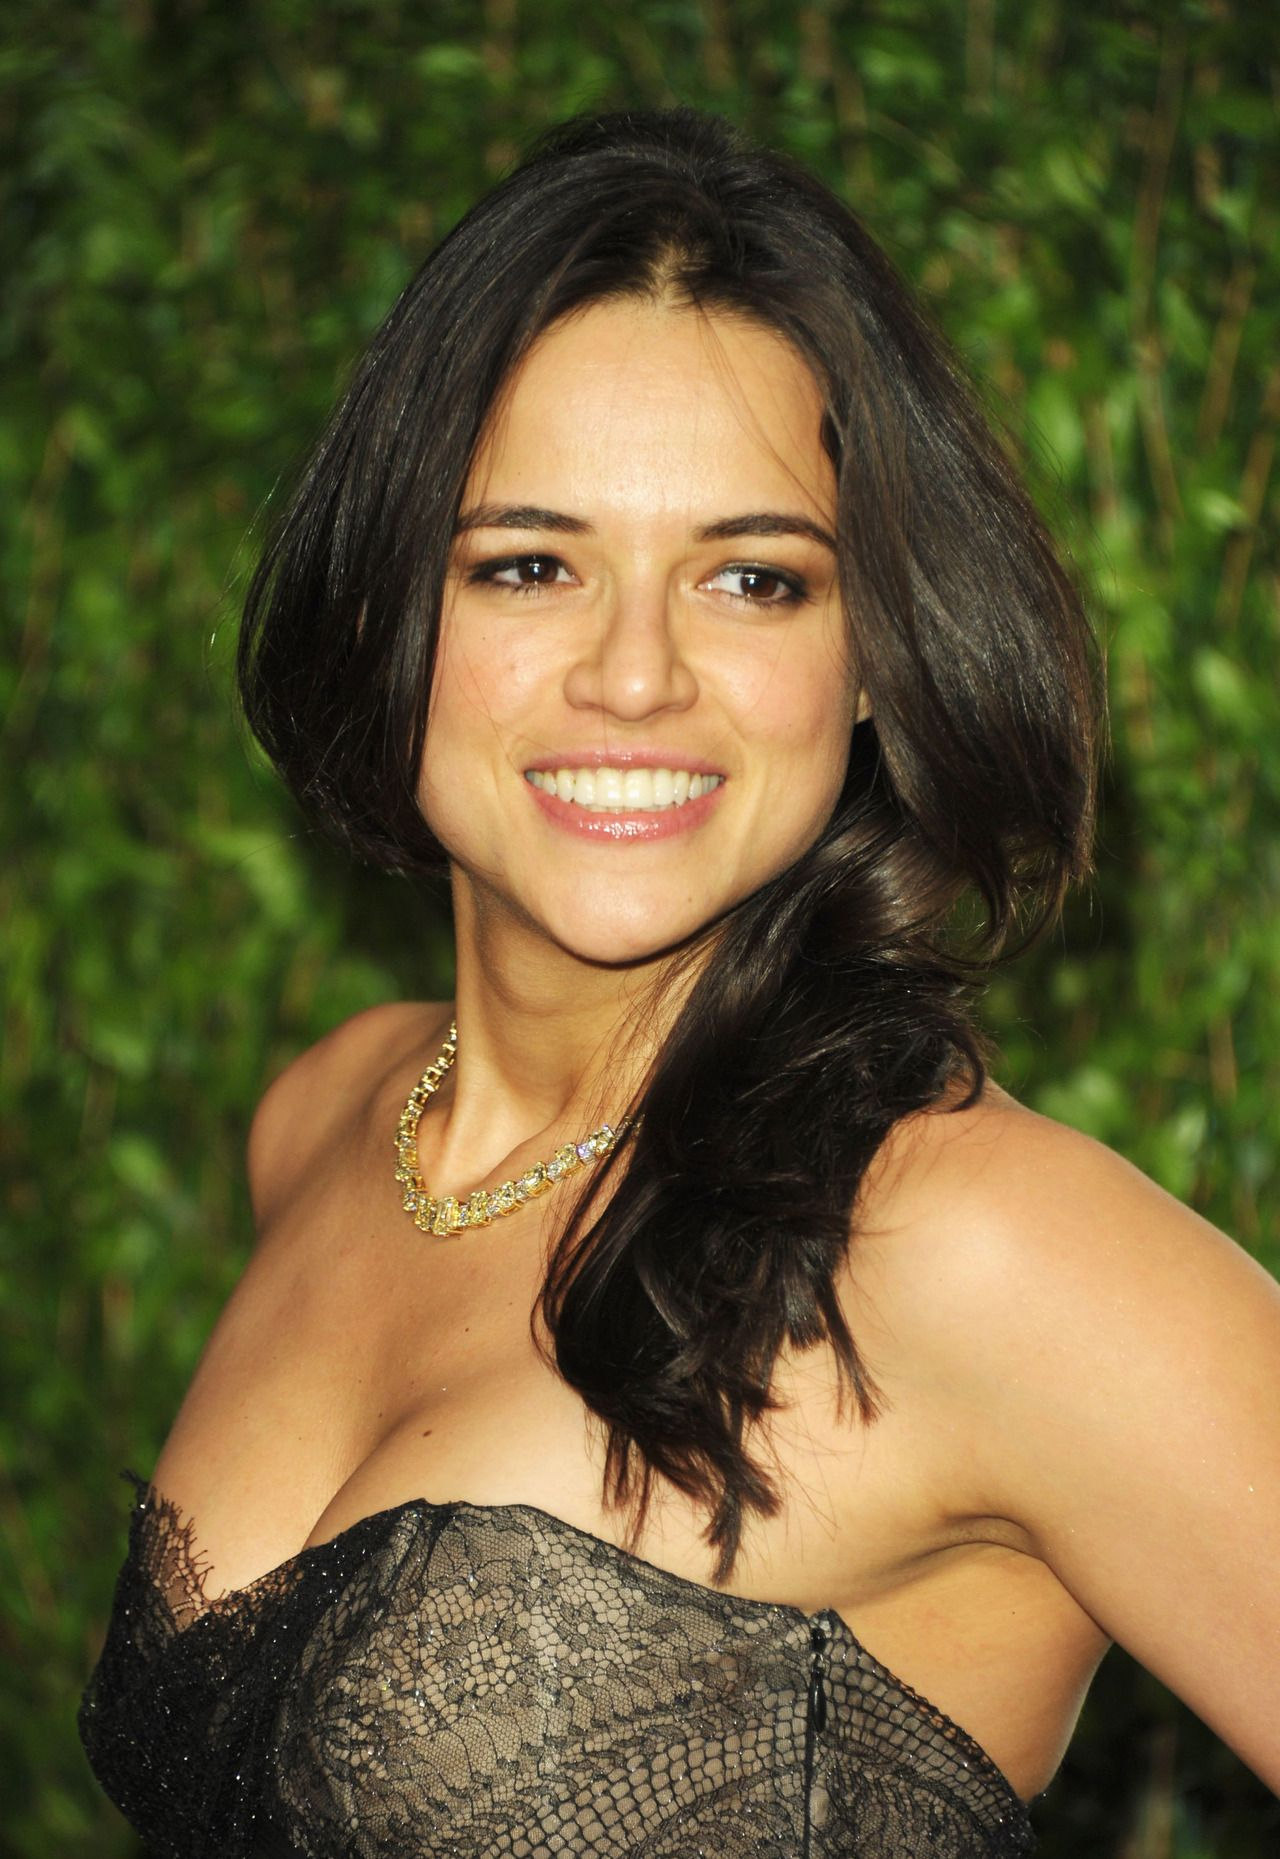 Young Michelle Rodriguez nude photos 2019